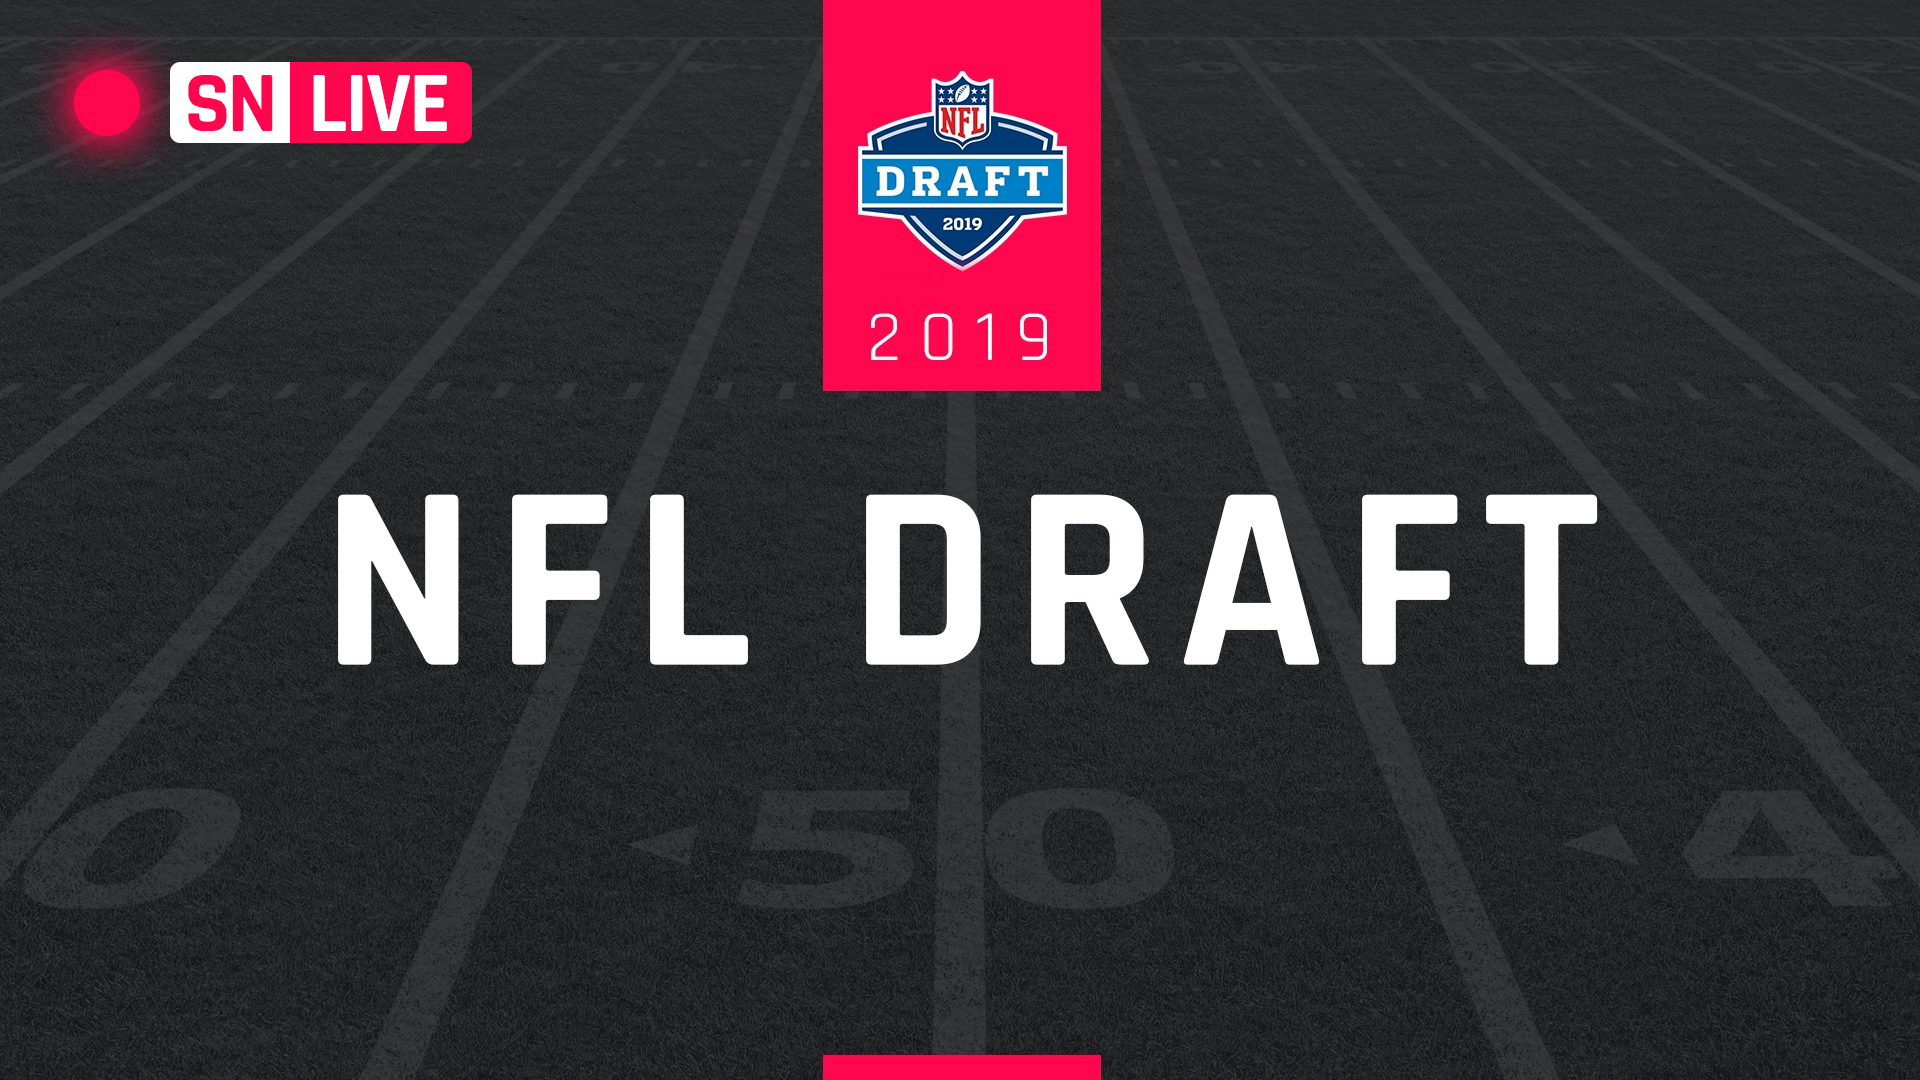 NFL Draft picks 2019: Complete draft results from Rounds 1-3